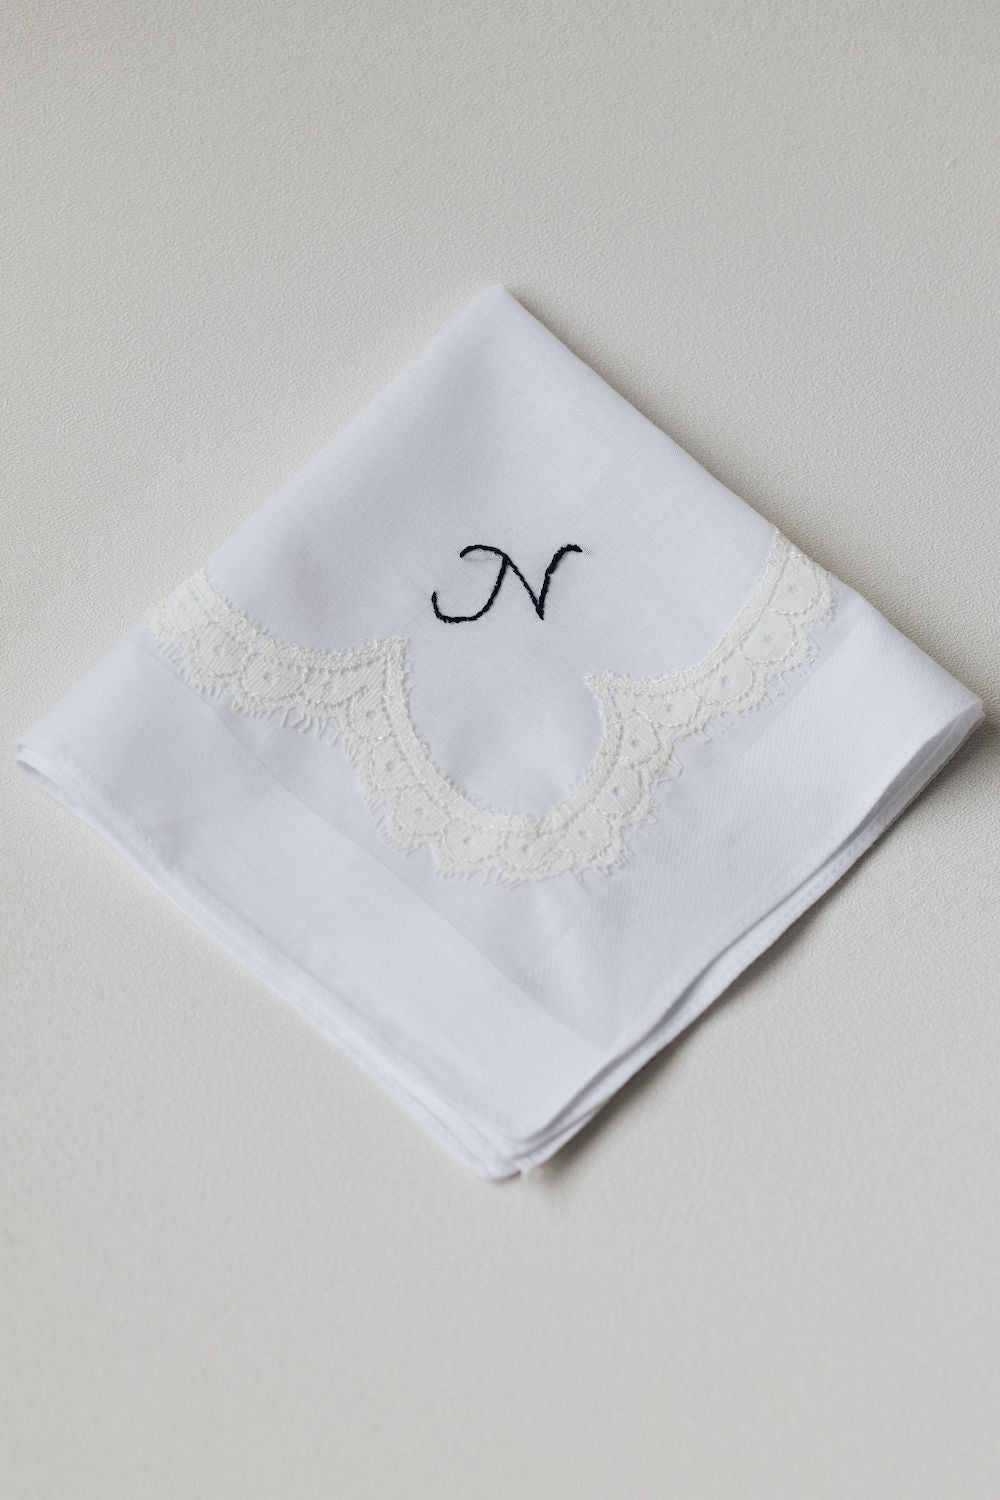 personalized wedding handkerchief made from bride's mother's lace wedding dress, embroidered w monogram - handmade heirloom by The Garter Girl